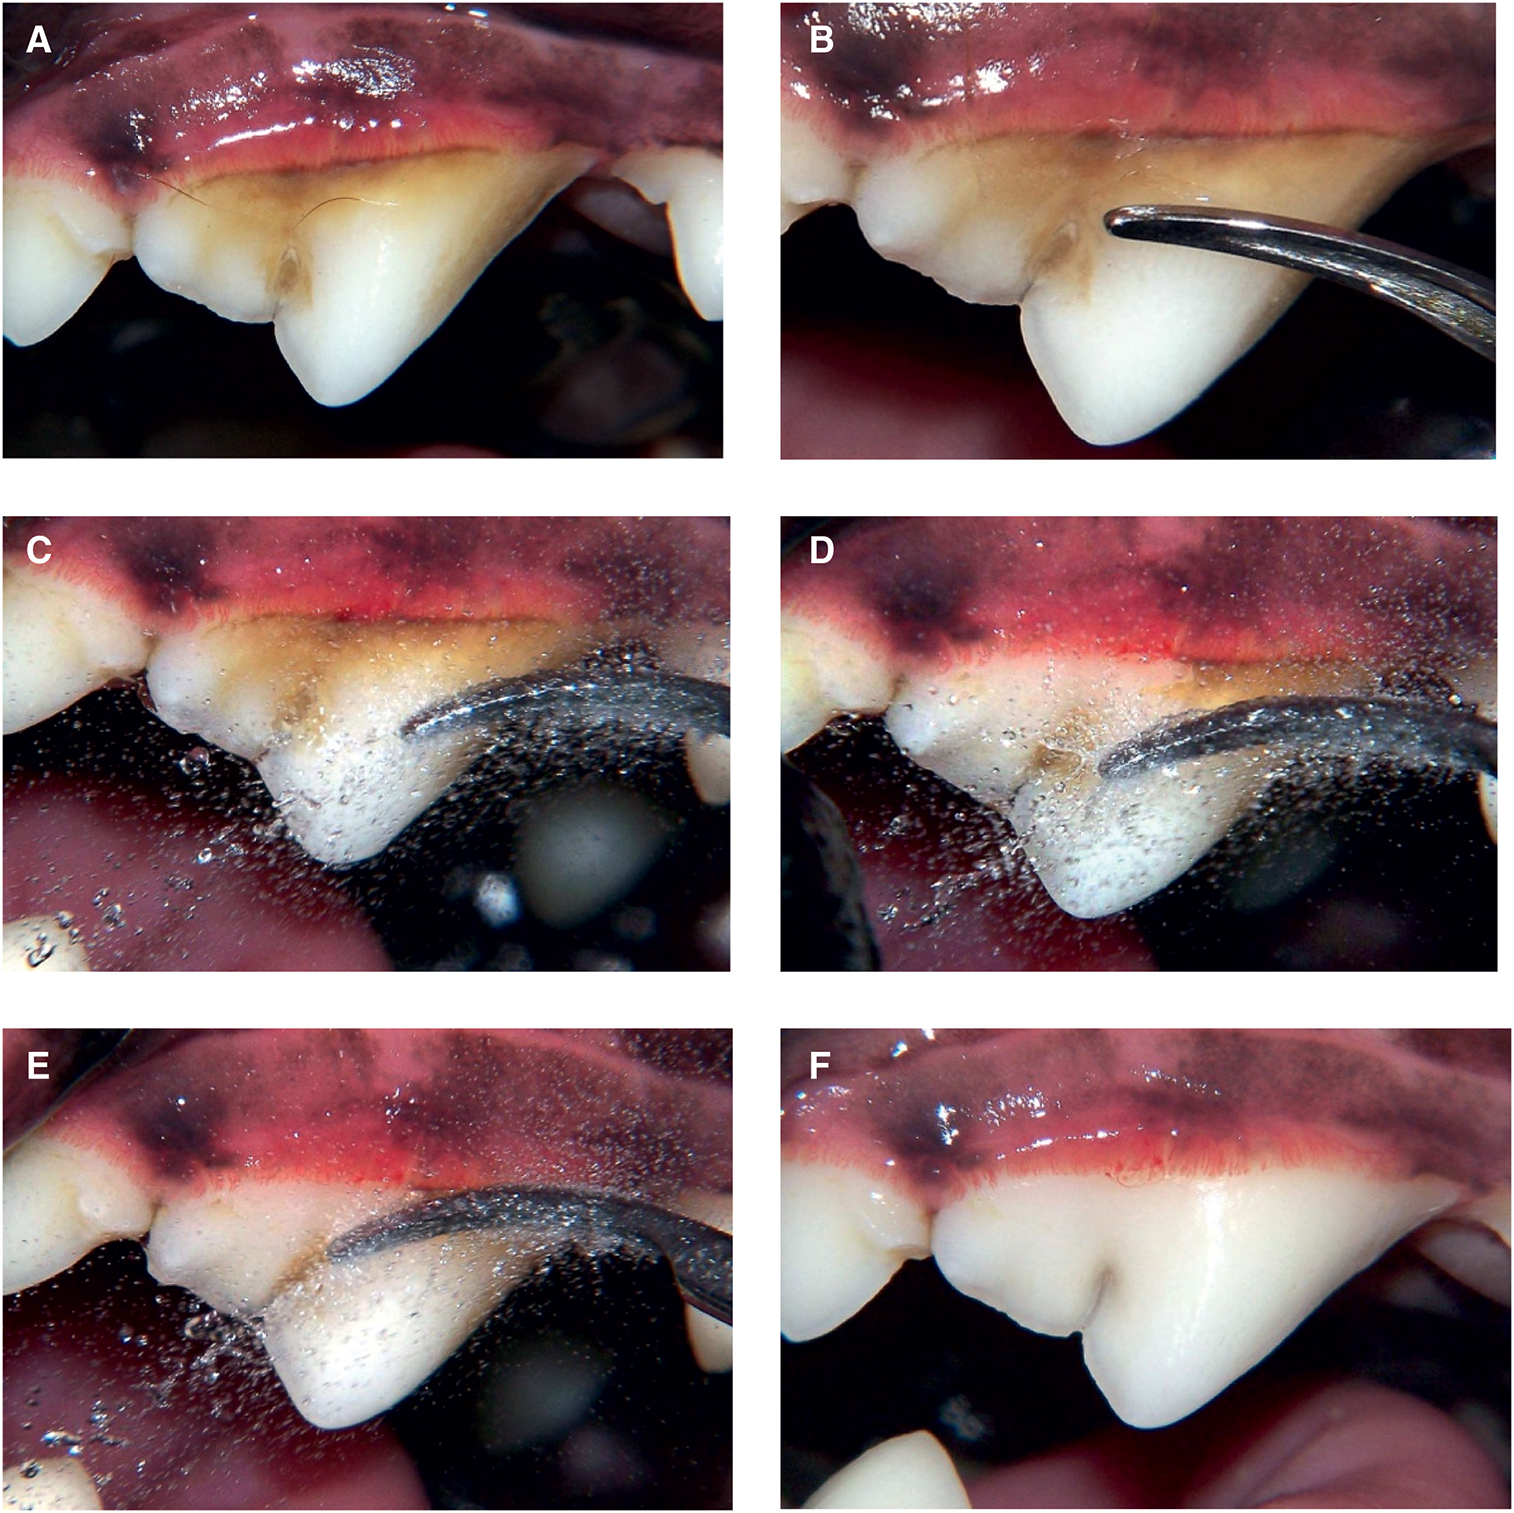 Sequence of dental cleaning